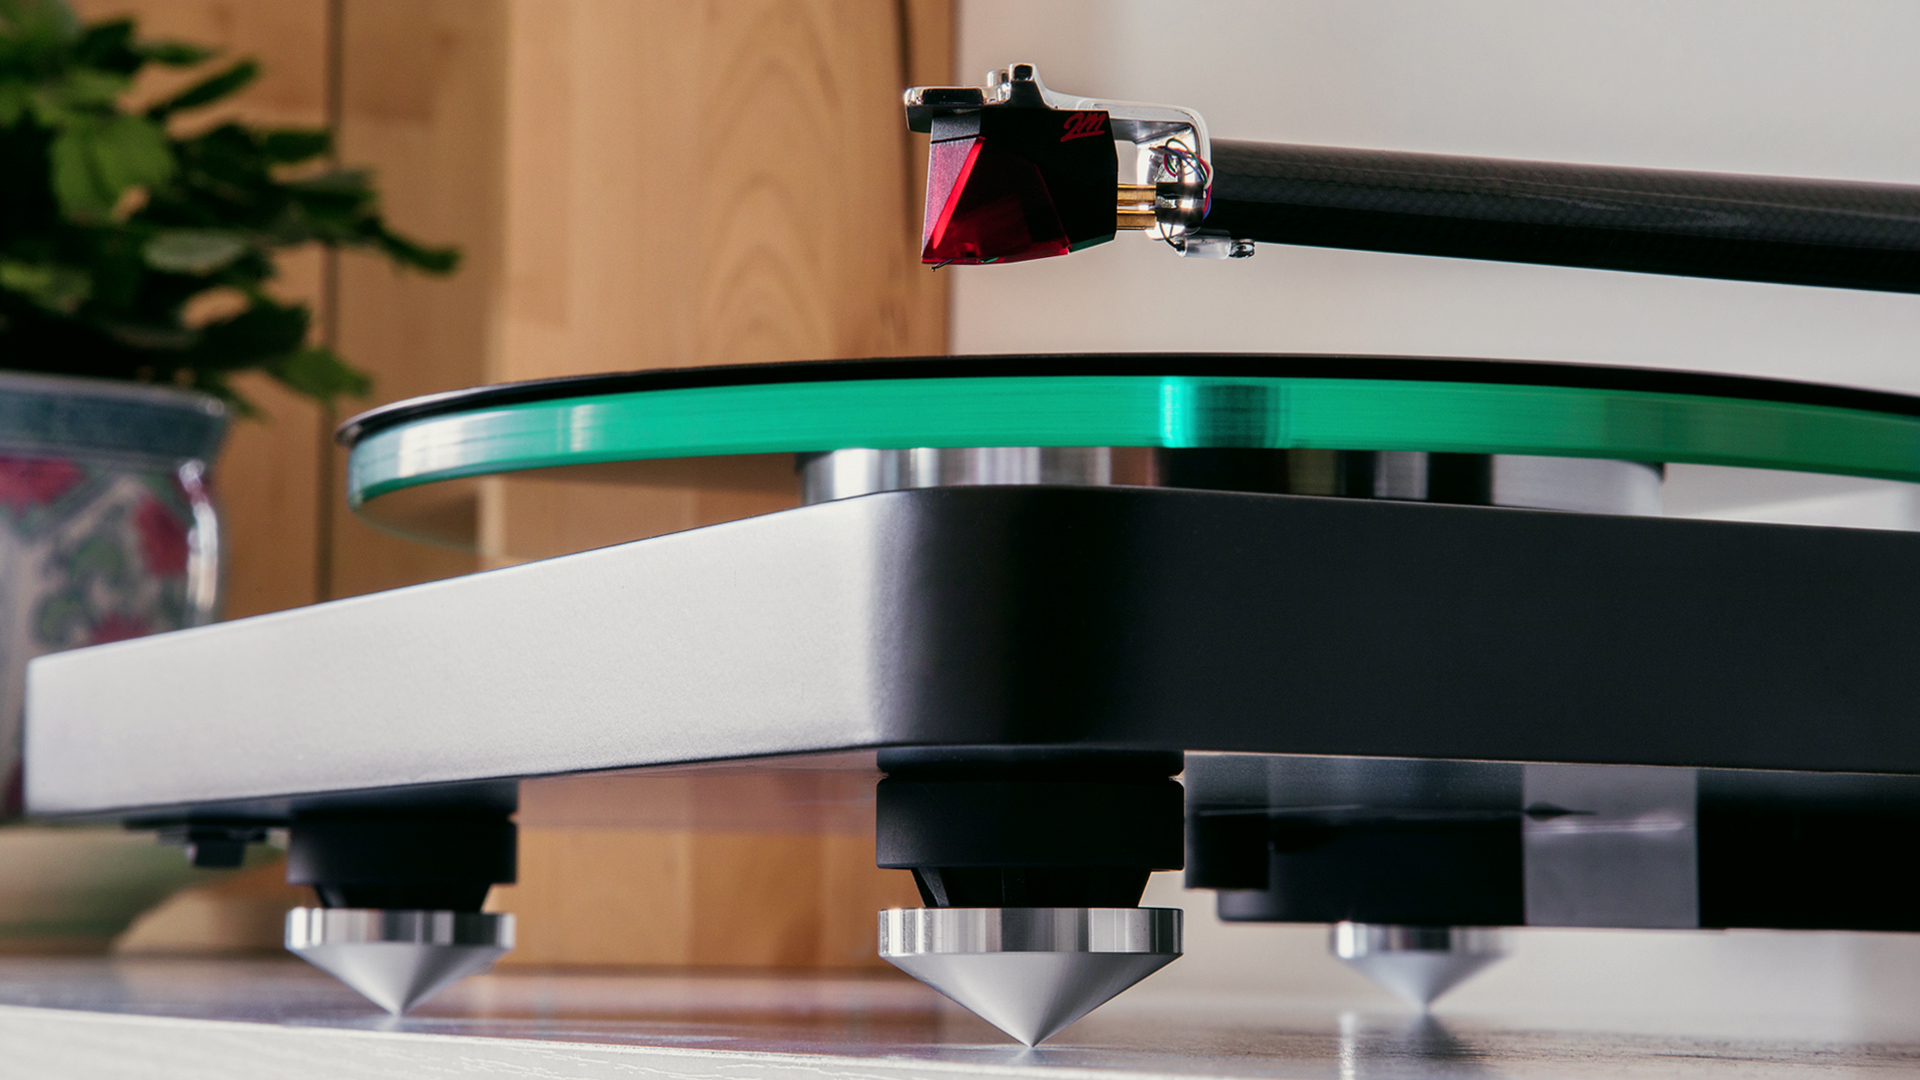 NAD C 588 turntable lifestyle